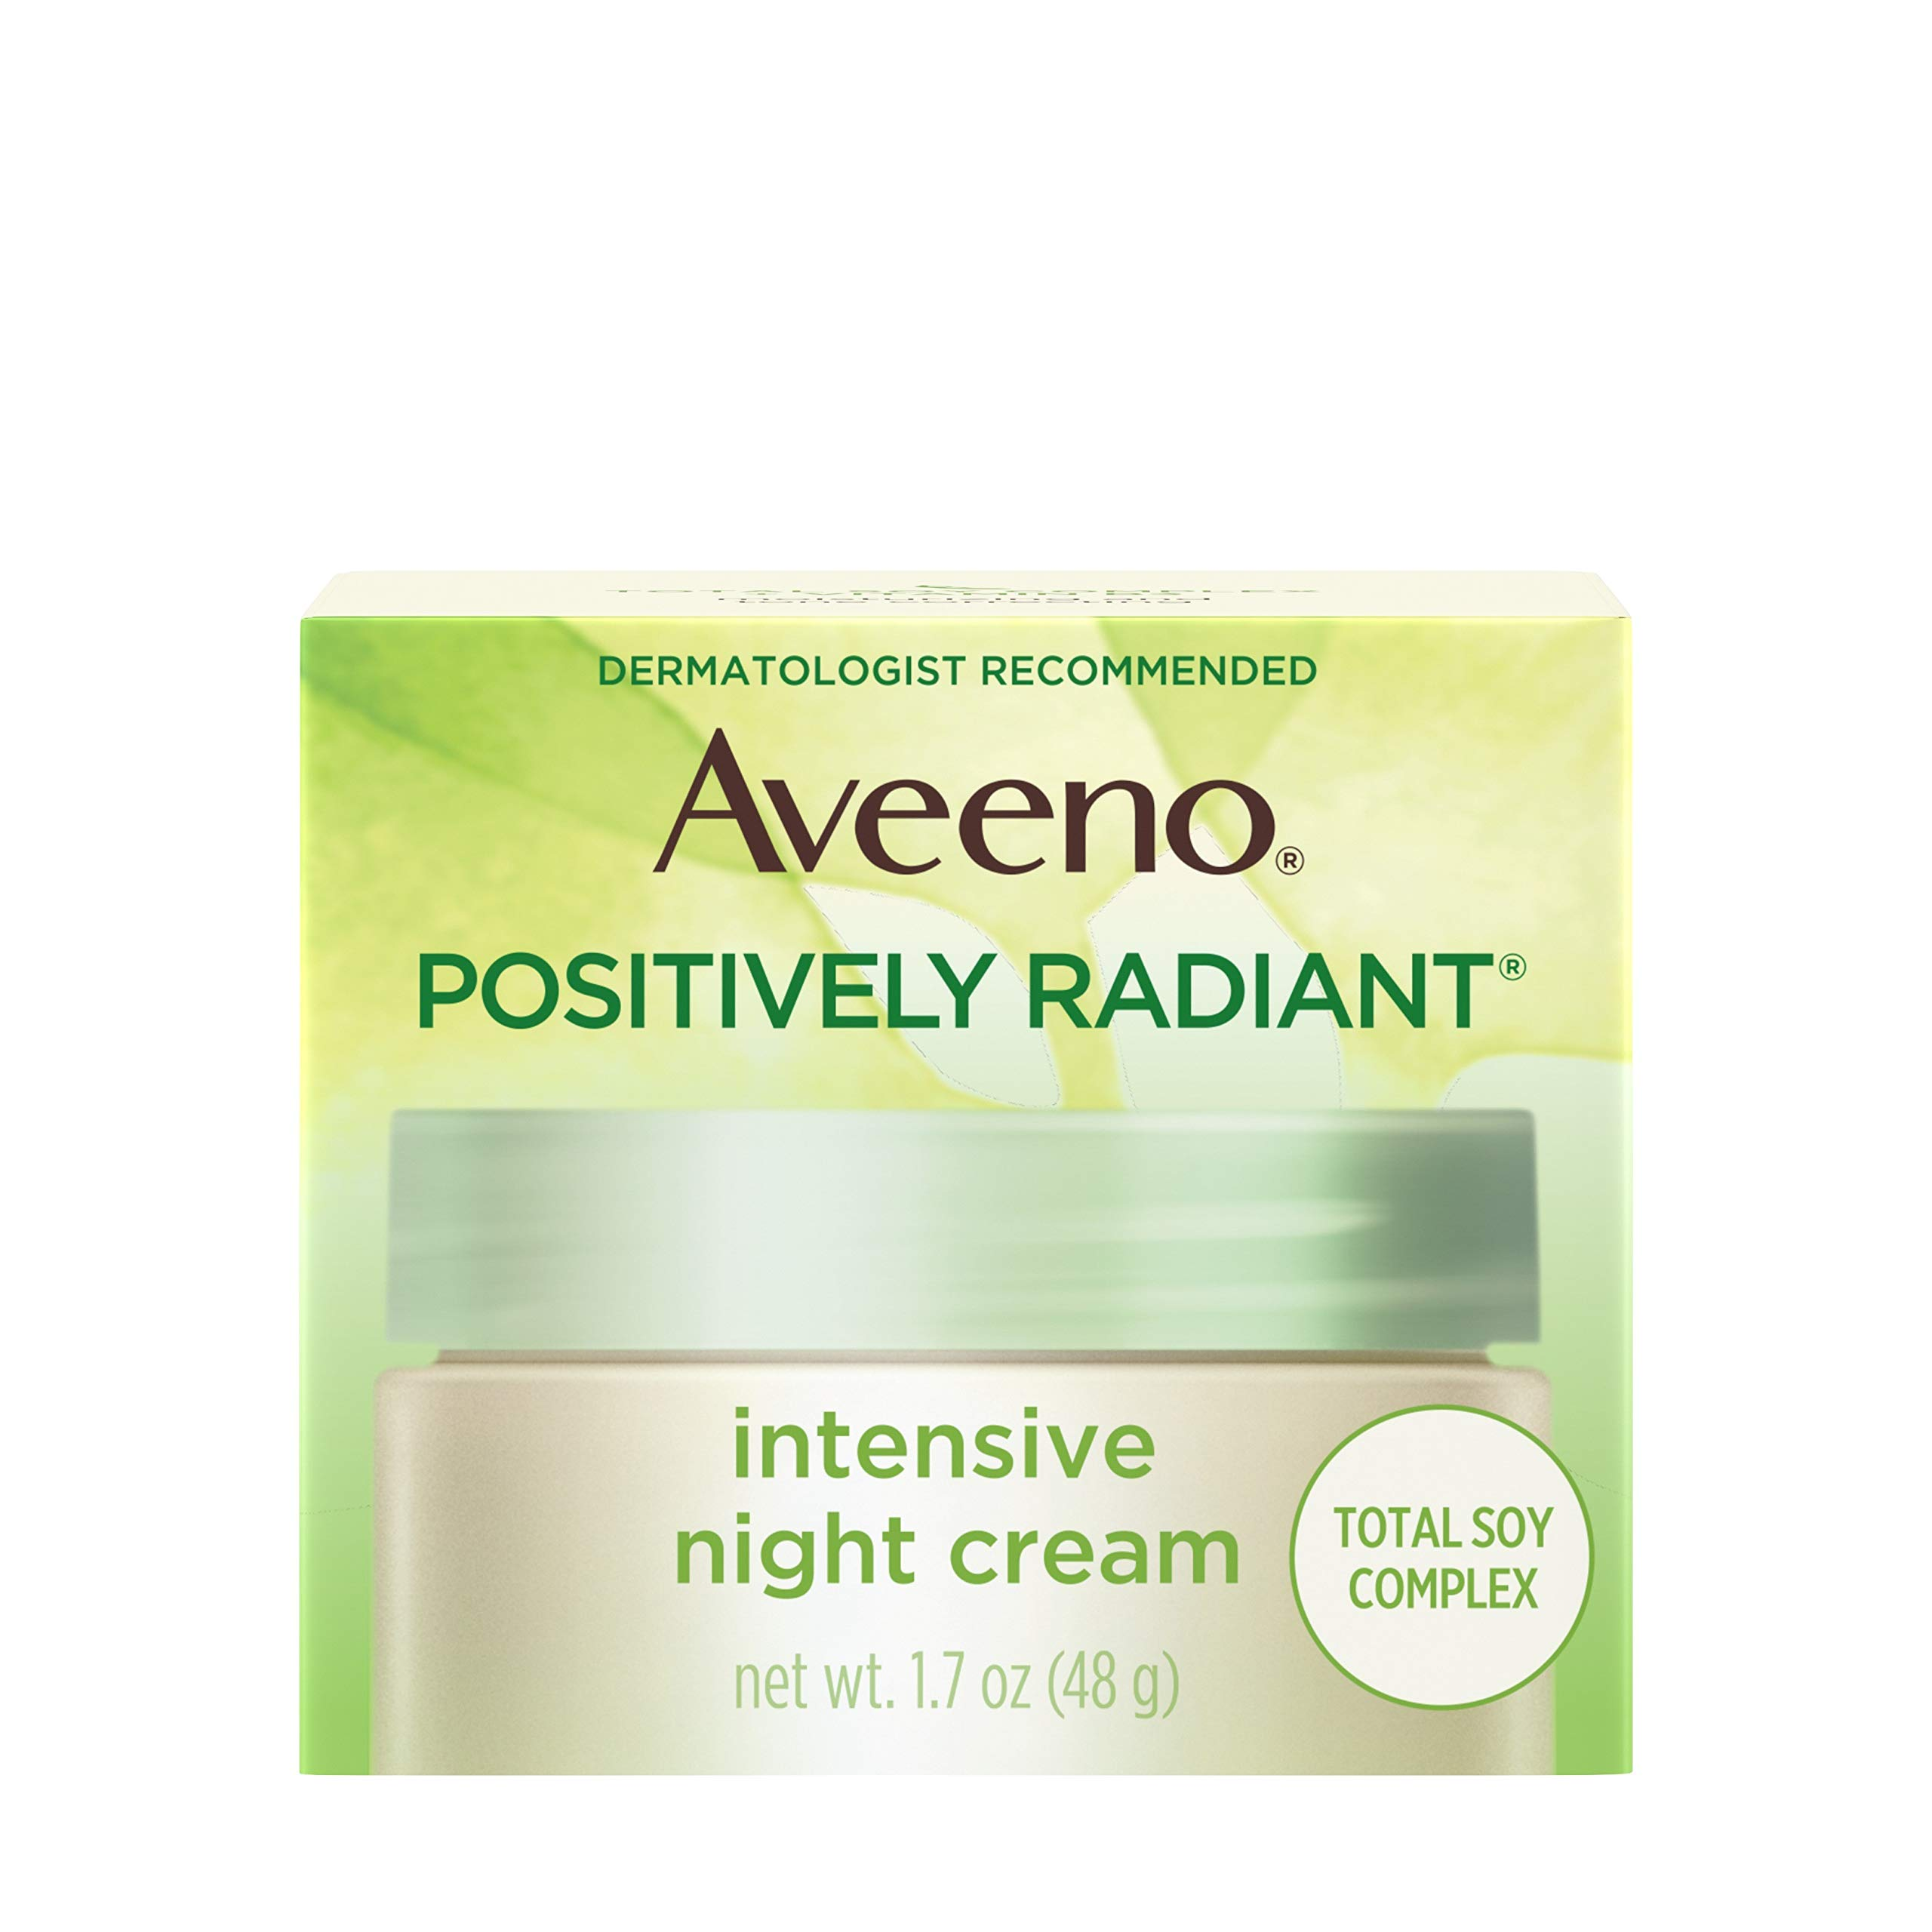 Aveeno Positively Radiant Intensive Moisturizing Night Cream with Total Soy Complex & Vitamin B3, Oil-Free, Non-Greasy, Hypoallergenic & Non-Comedogenic, 1.7 oz by Aveeno